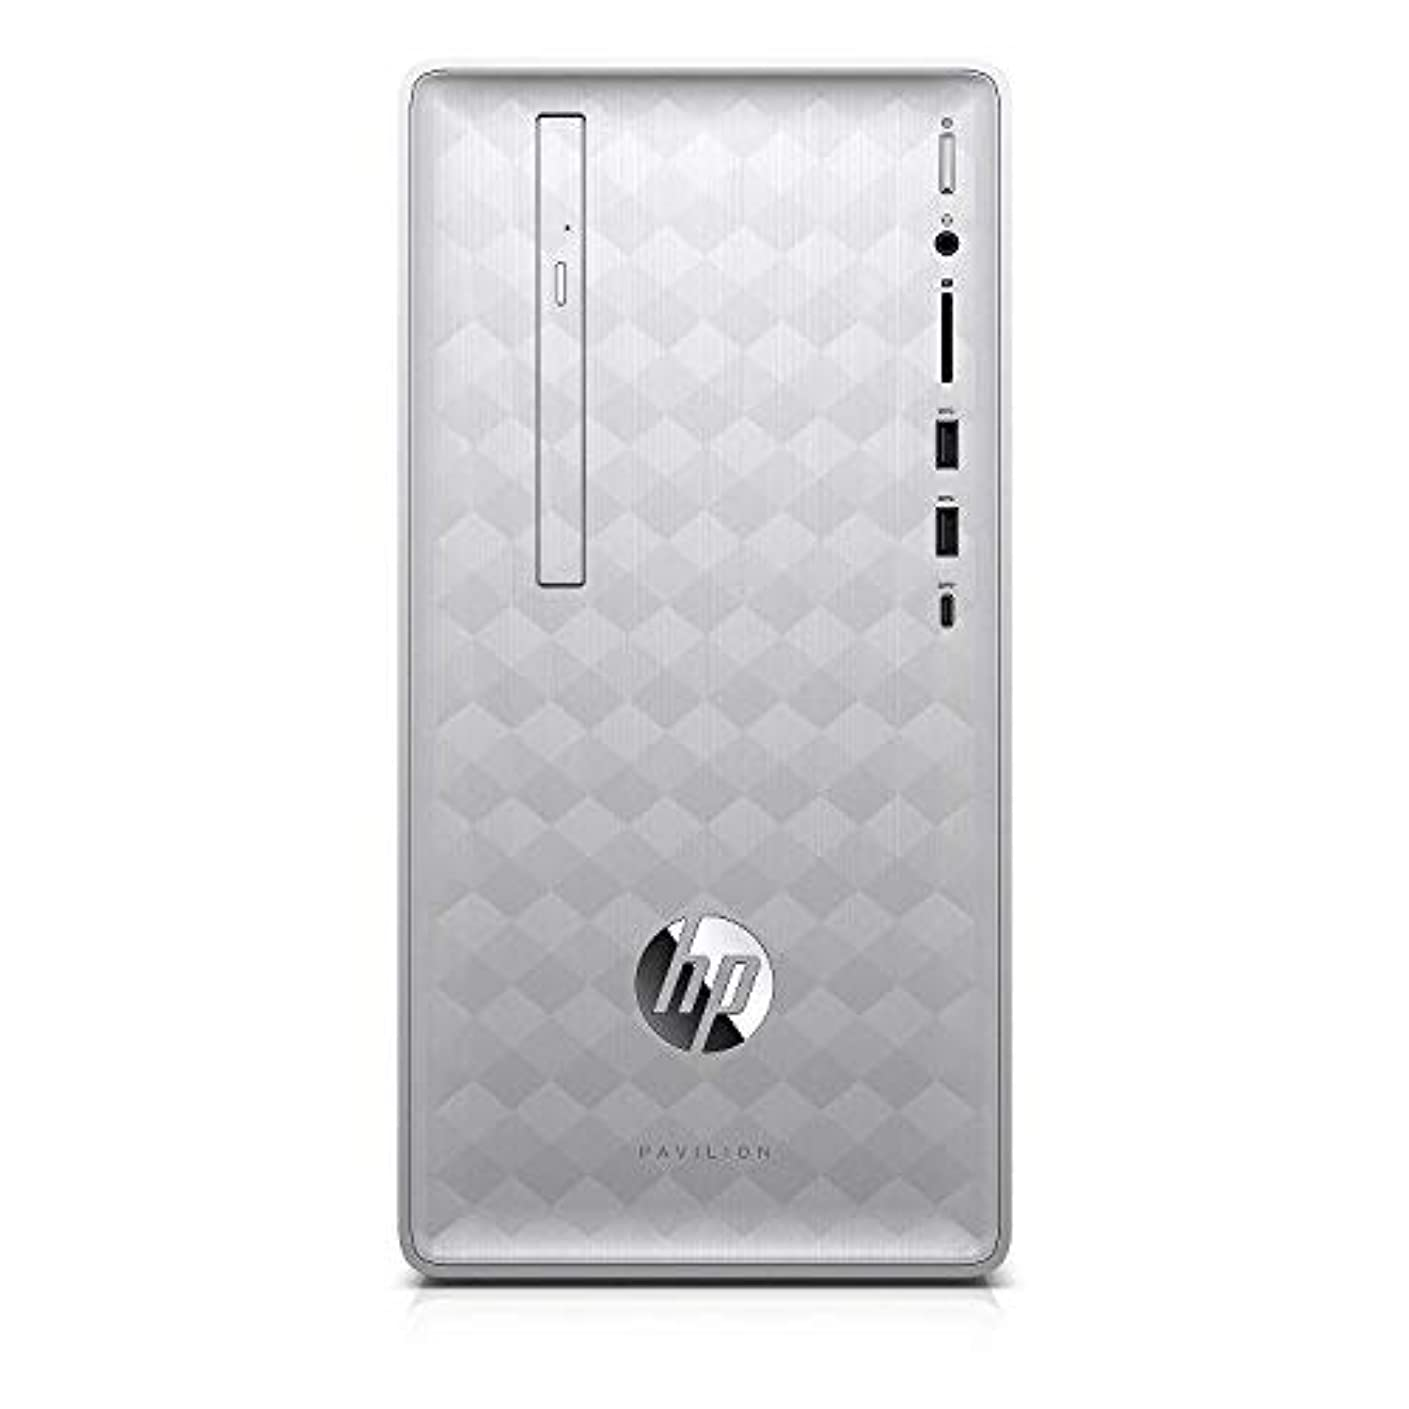 ほめる参照石灰岩HP Pavilion 590-p0057c Desktop - 8th Gen Intel Core i5-8400 6-Core up to 4.00 GHz 16GB DDR4 Memory 1TB SATA Hard Drive 2GB AMD Radeon RX 550 Graphics DVD Writer Windows 10 (64-bit) Silver [並行輸入品]